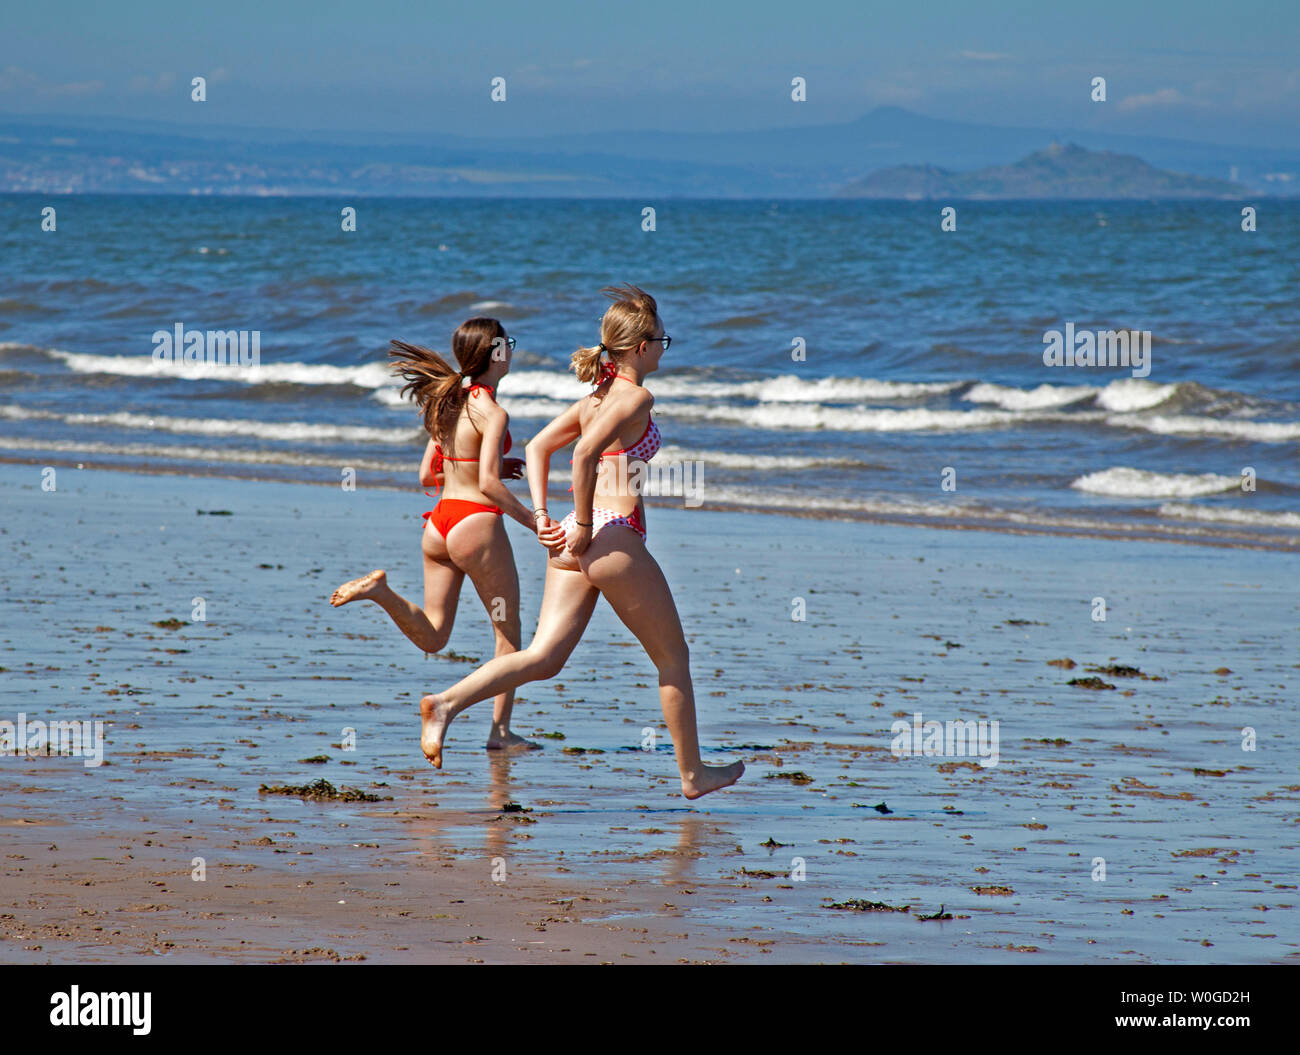 Portobello Beach, Edinburgh, Scotland. 27th June 2019. UK weather. A group of Italian students swap a scorching temperature of 36 degrees in their home city of Milan for an enjoyable hot 19 degrees on Edinburgh's coastline. Also, two girls keep cool by splashing each other by kicking the sea water at each other. - Stock Image